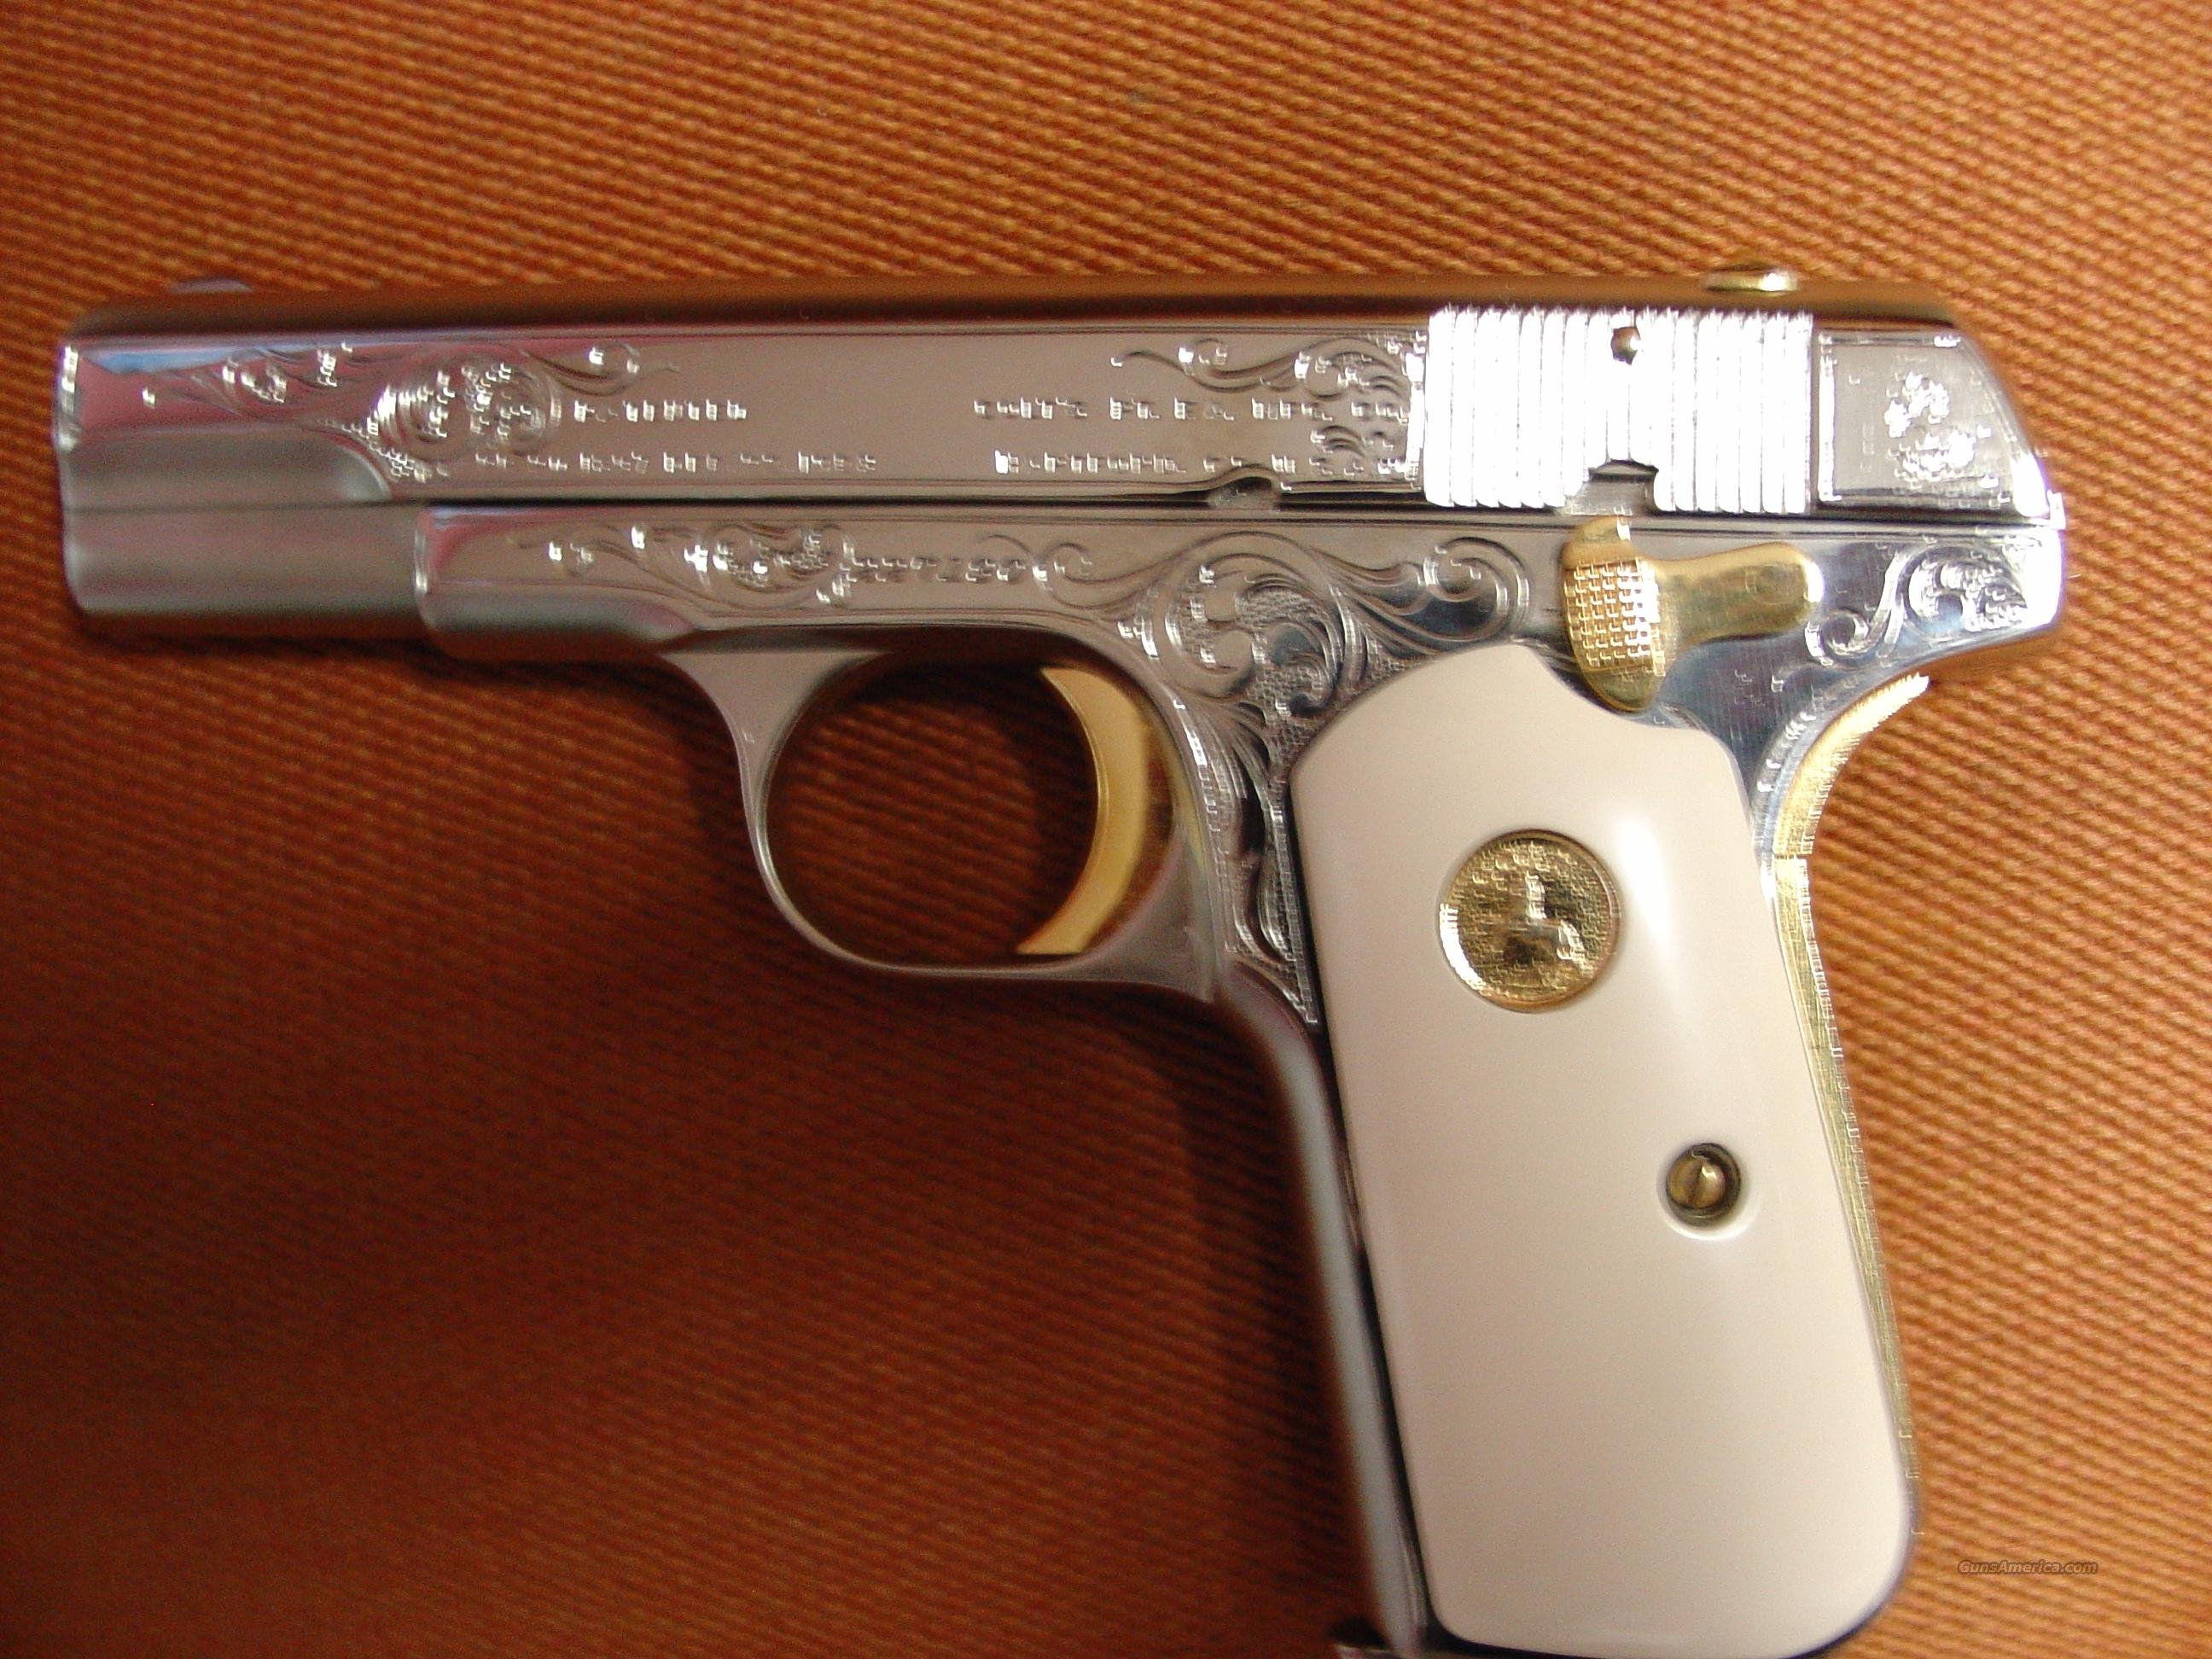 Colt 1903,32 caliber,engraved,refinished,polished nickel,24K gold accents,bonded ivory grips,1916 !! 97 years old & awesome showpiece !!  Guns > Pistols > Colt Automatic Pistols (.25, .32, & .380 cal)